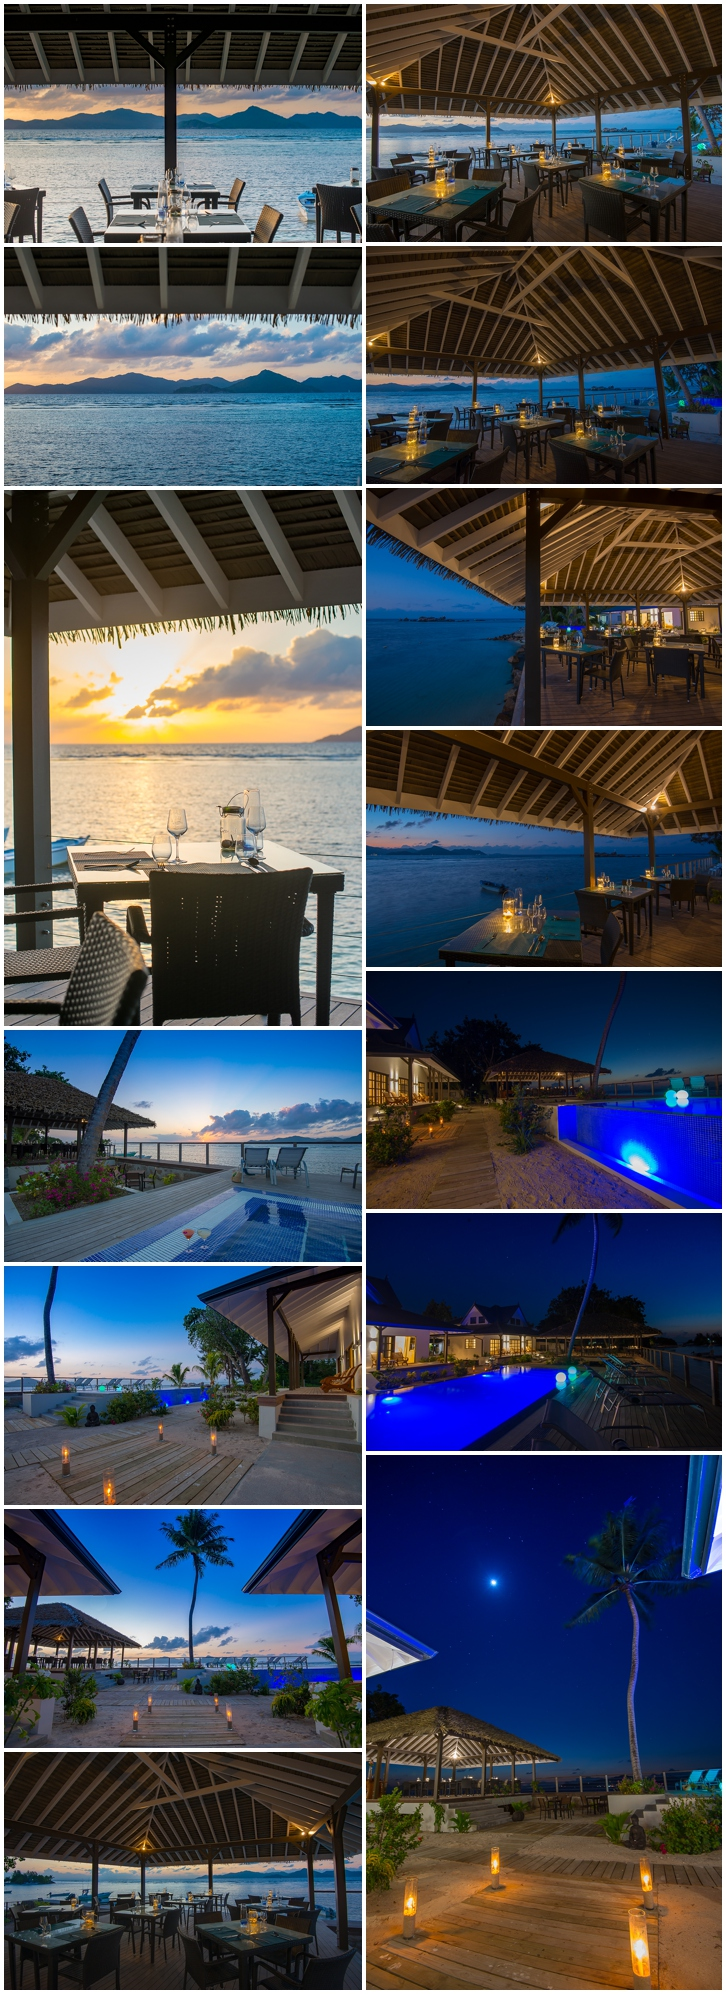 Le Nautique luxury waterfront hotel on La Digue